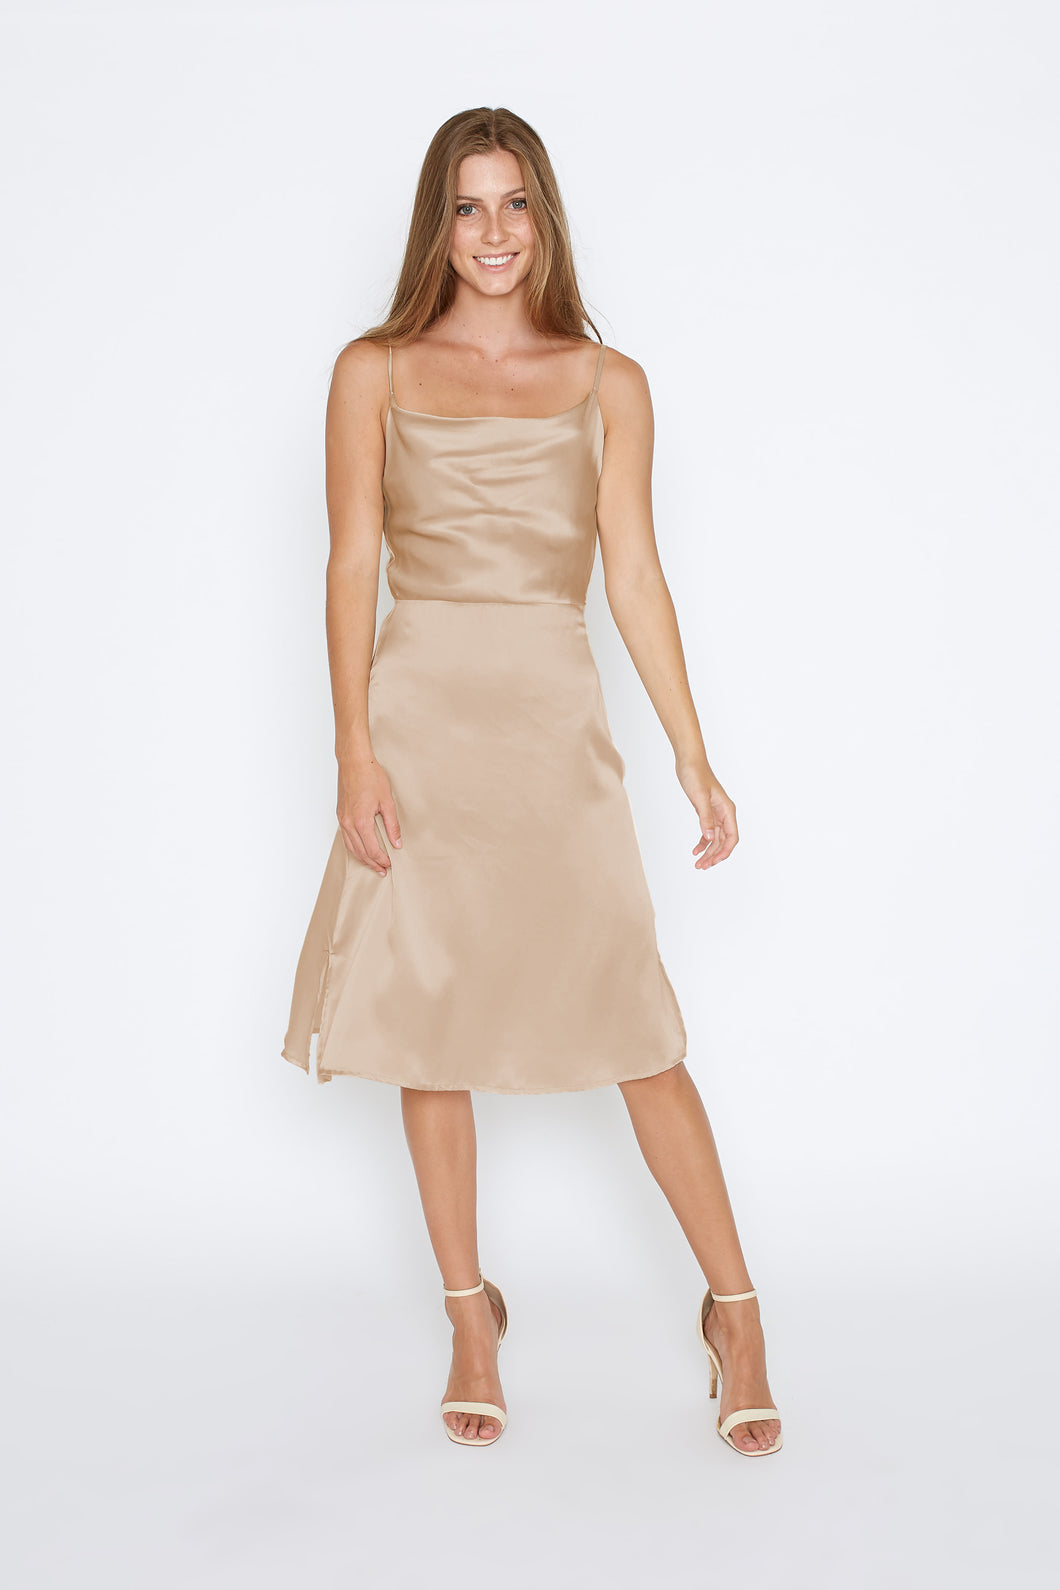 Amy Dress - Beige - Size 8